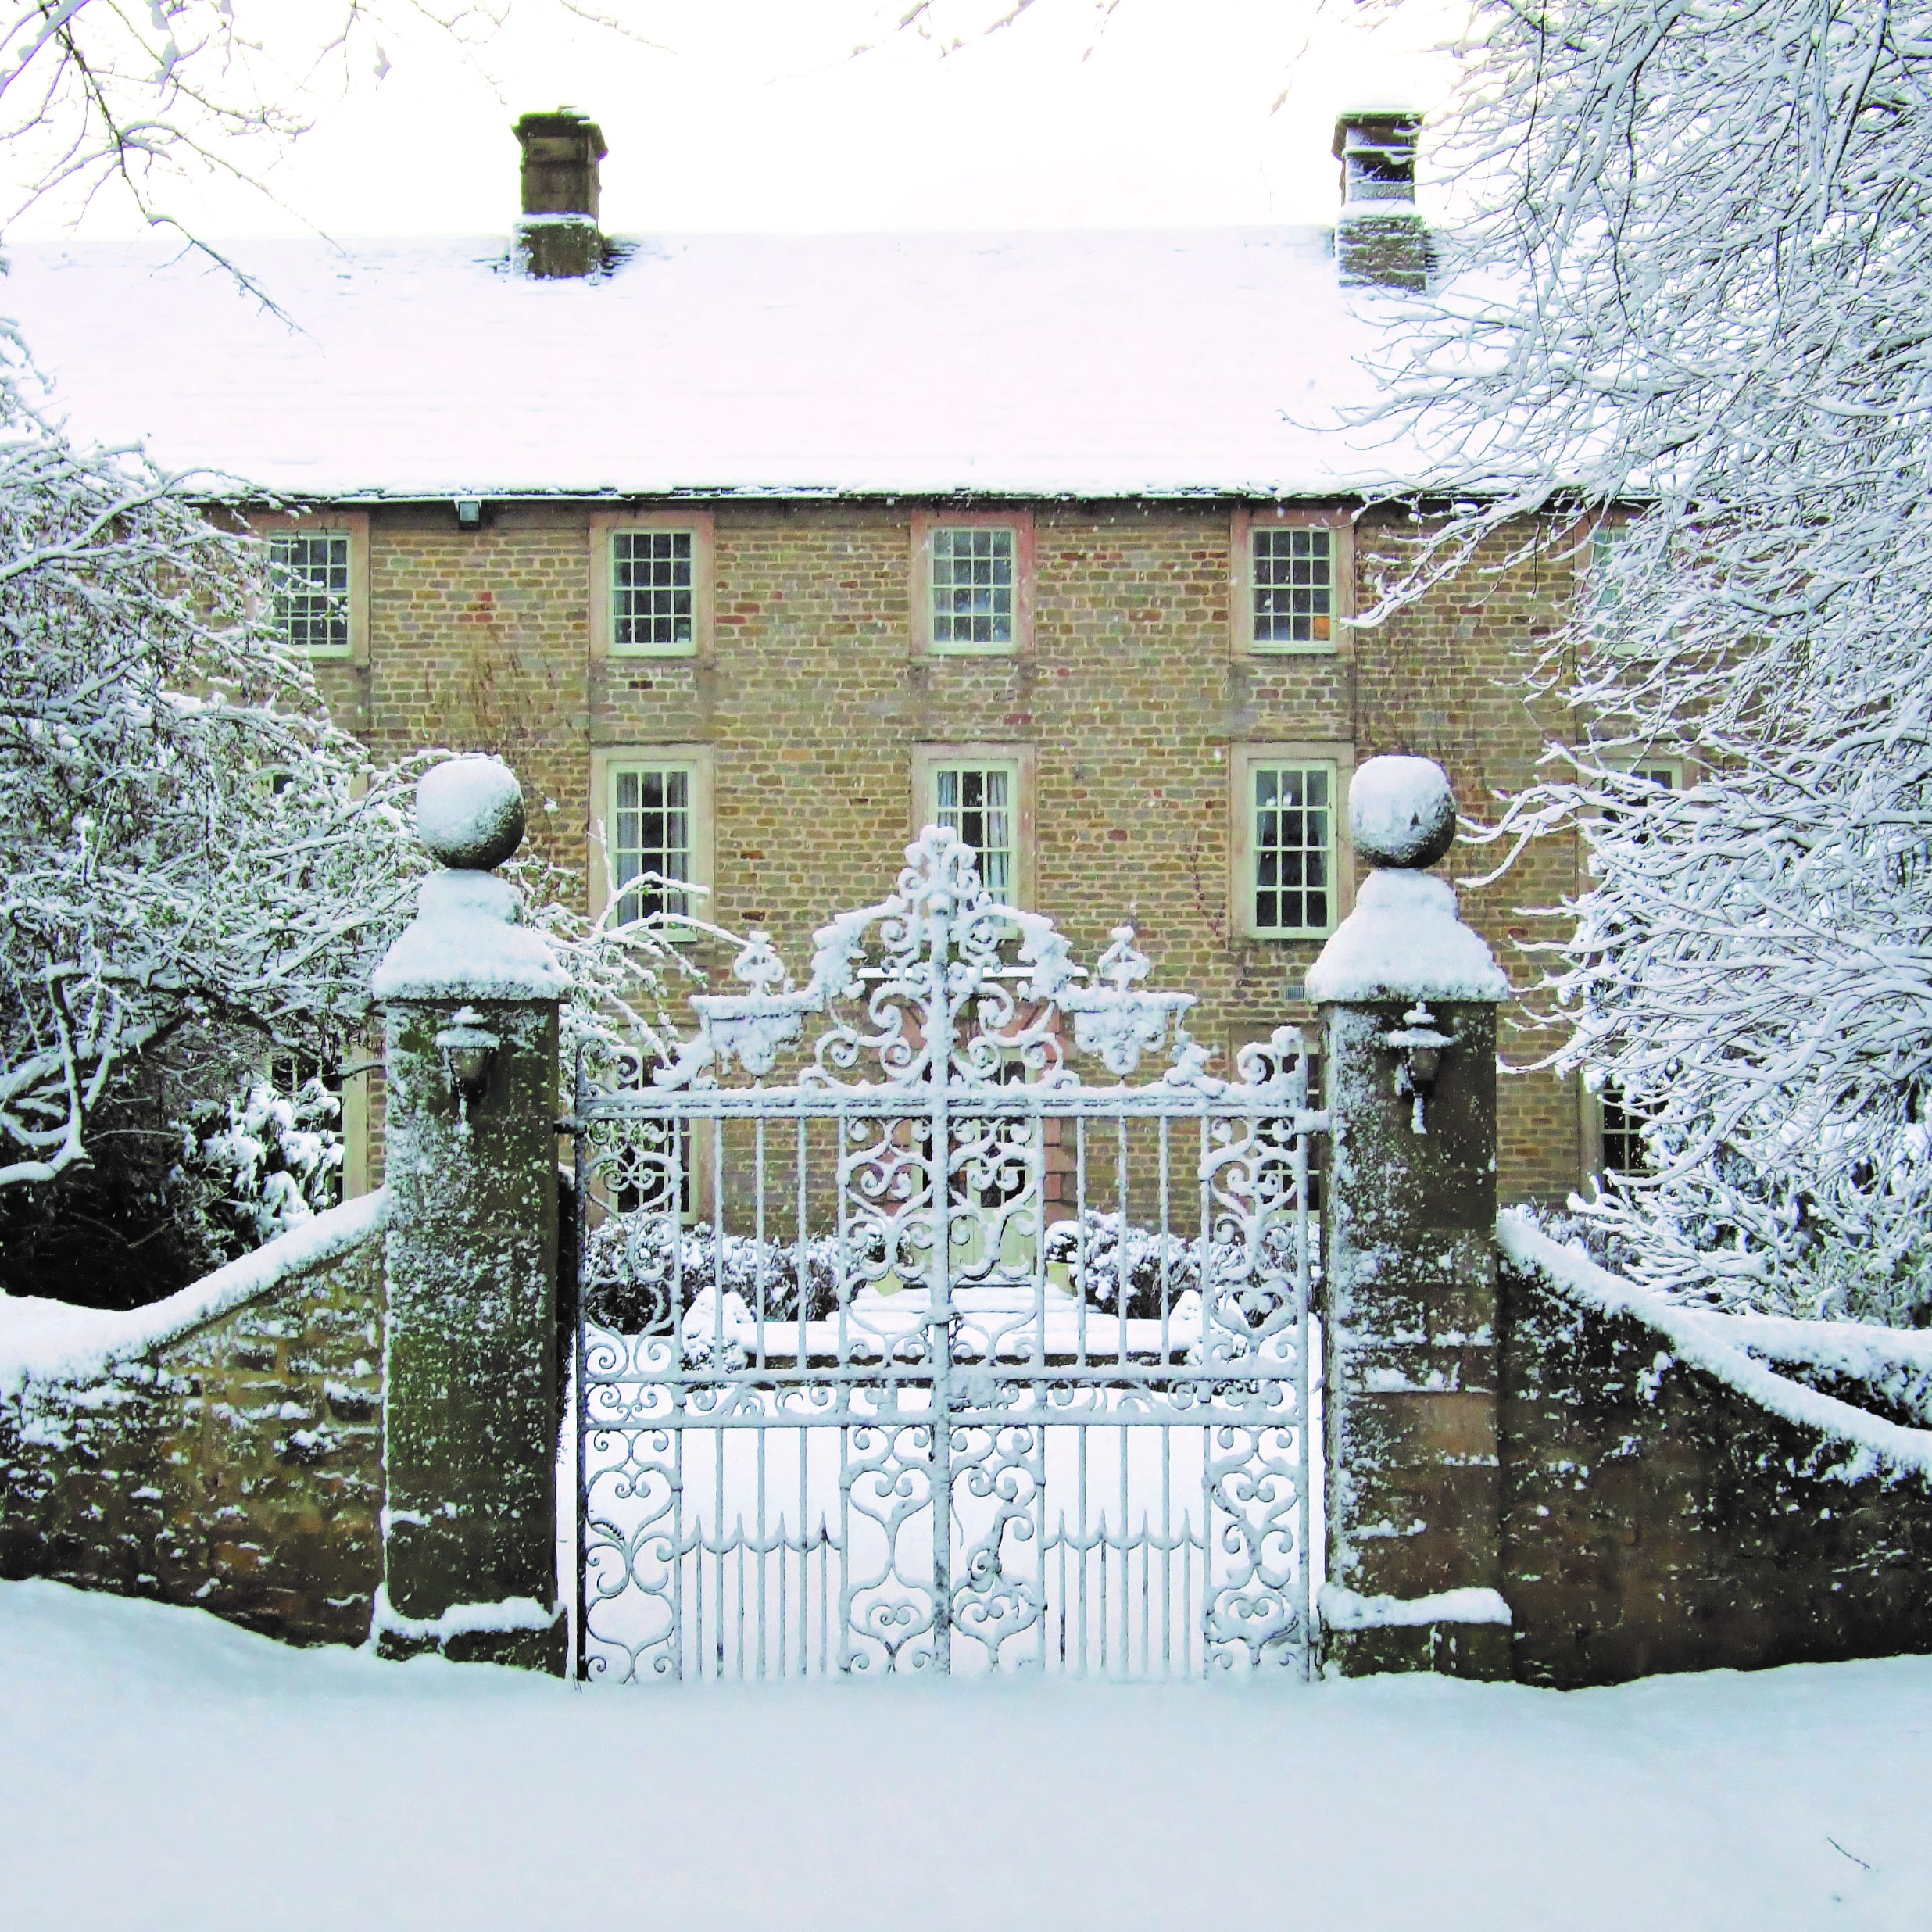 Things to do over the Christmas season in County Durham